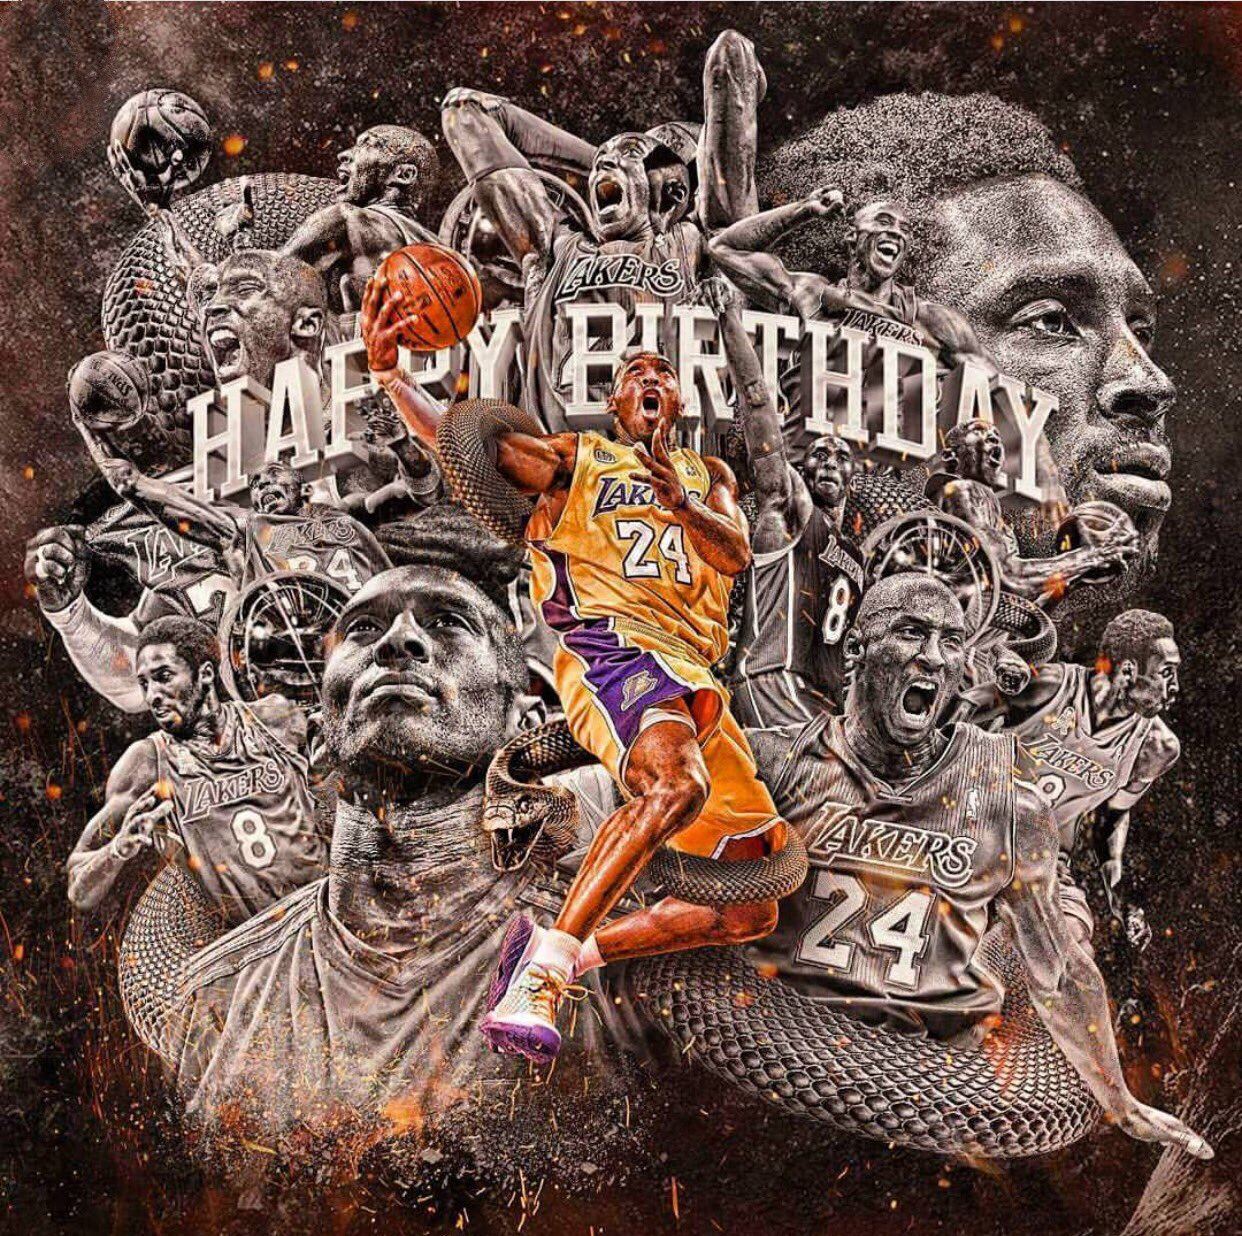 Happy Birthday to my favorite player of all time @KobeBryant https://t.co/8A9Z3YK7g1